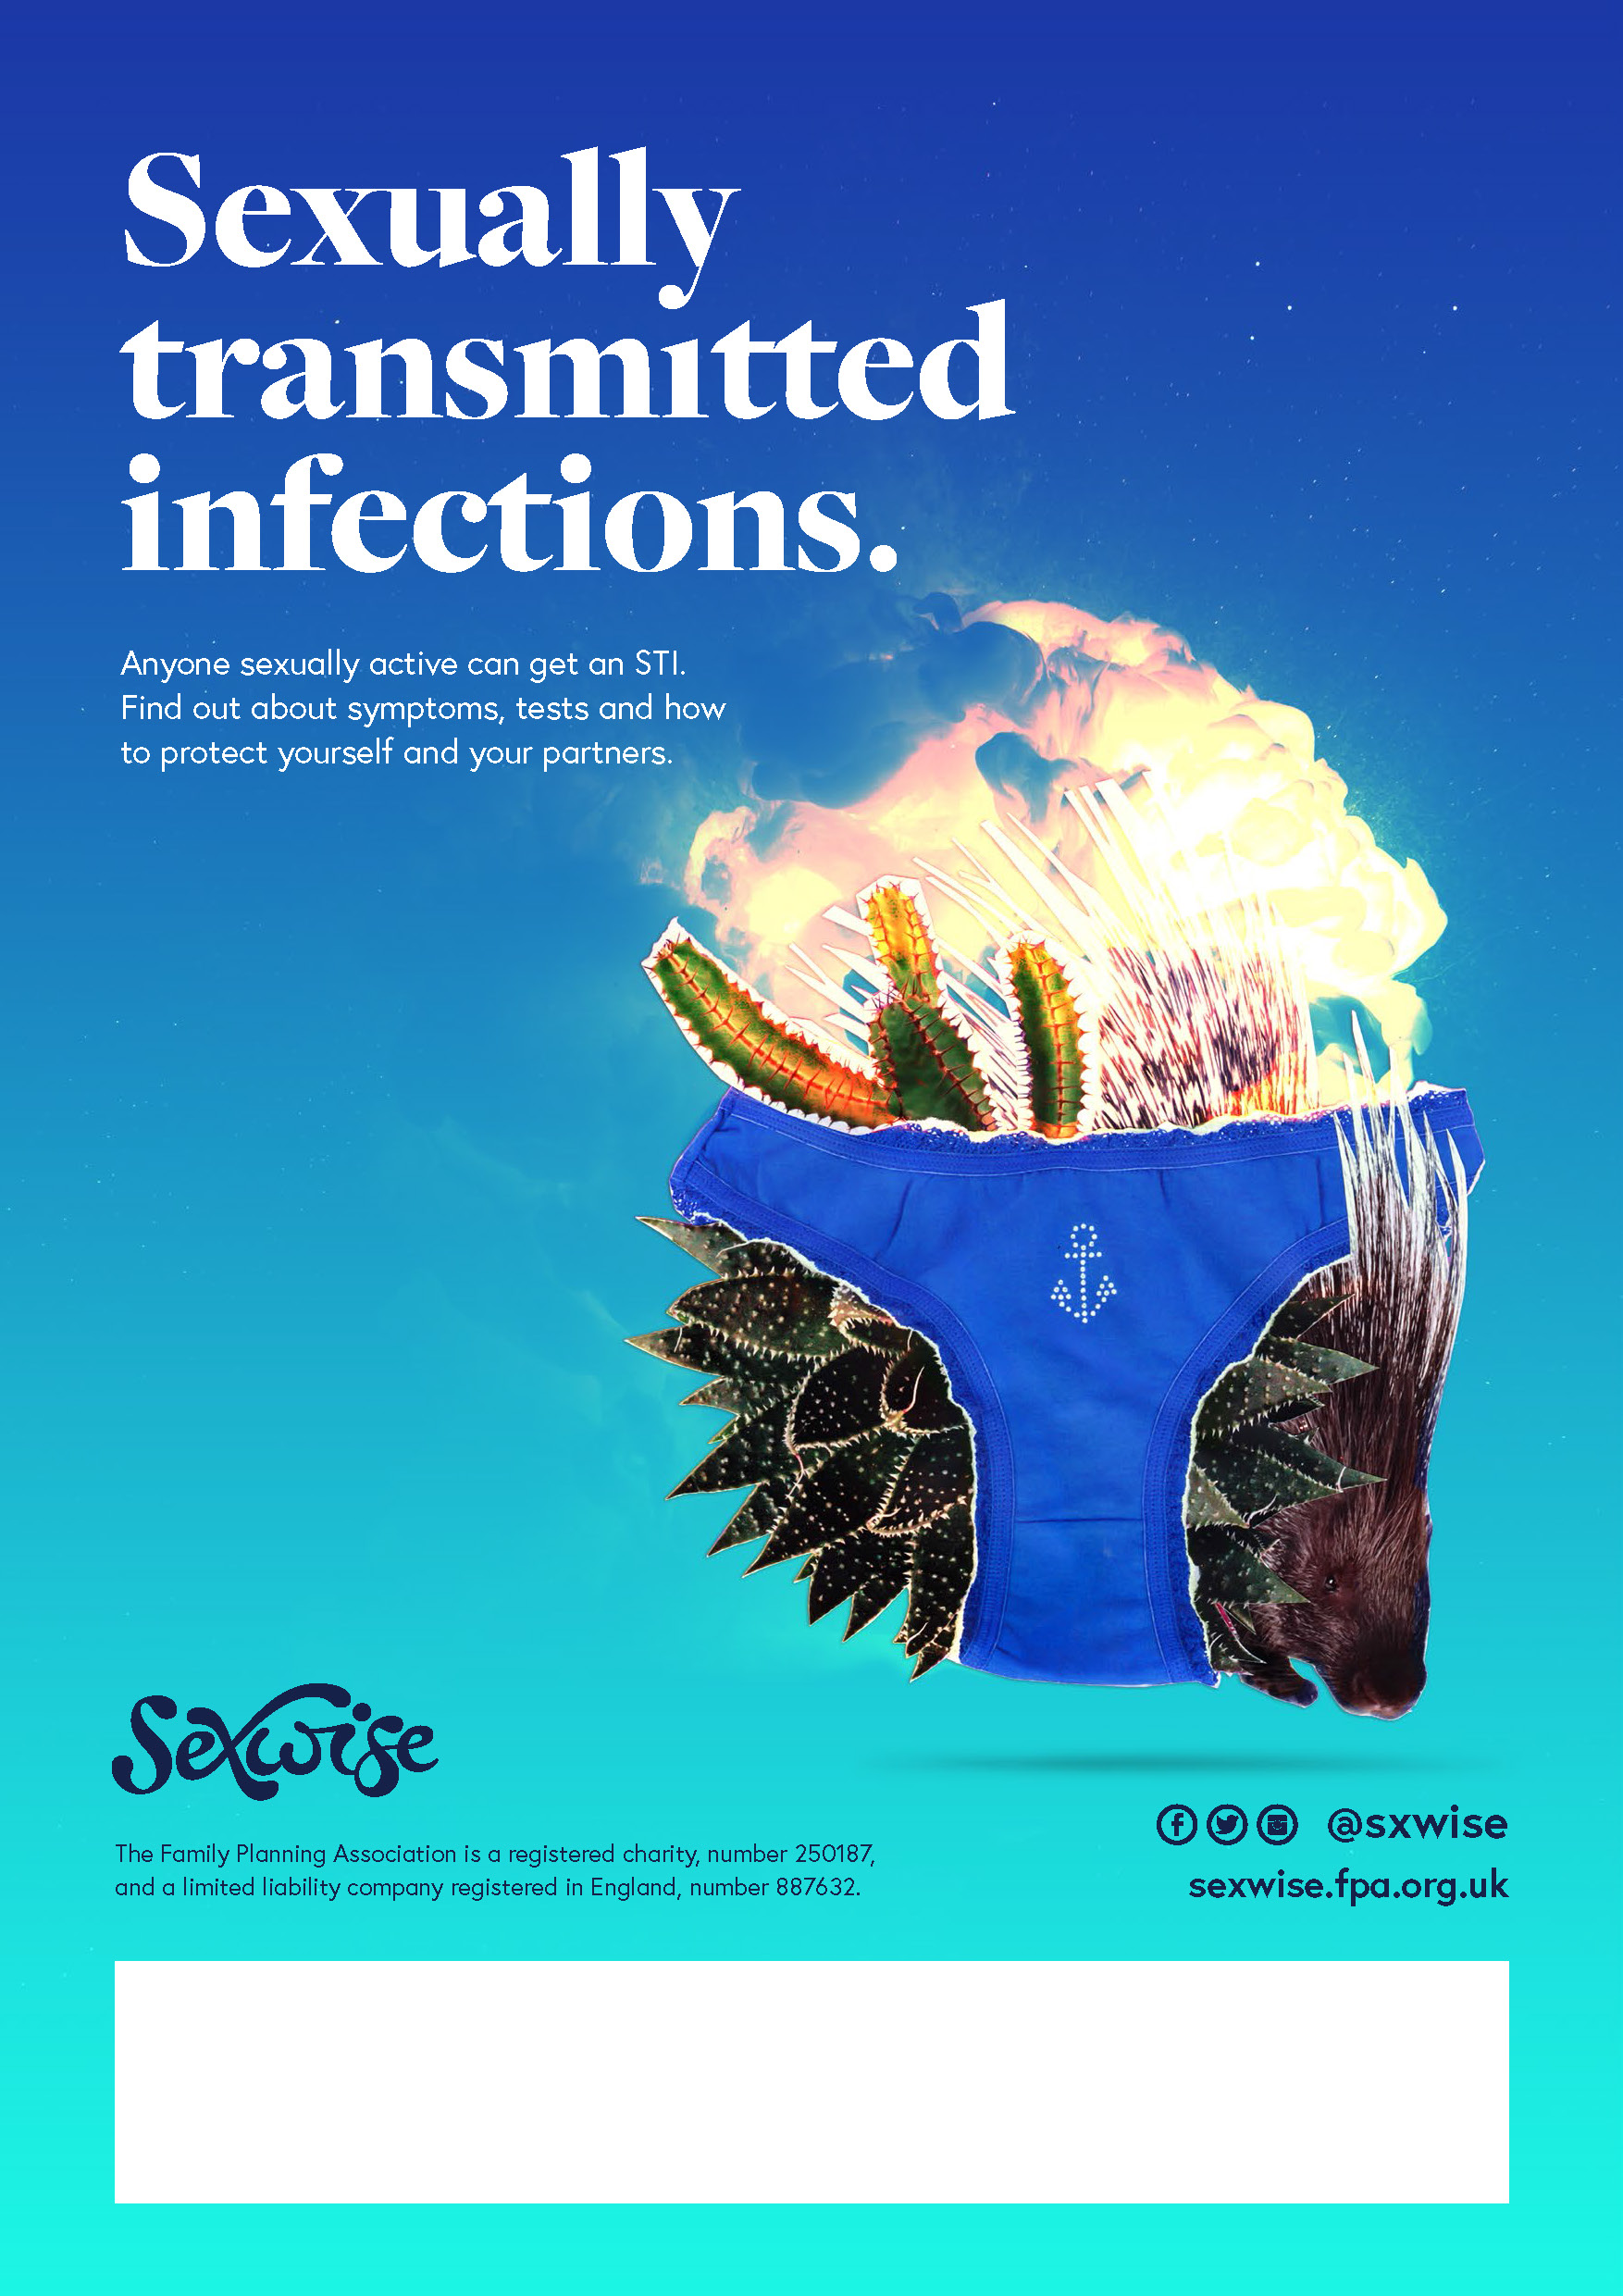 Sexwise sexually transmitted infections poster with space to add your details